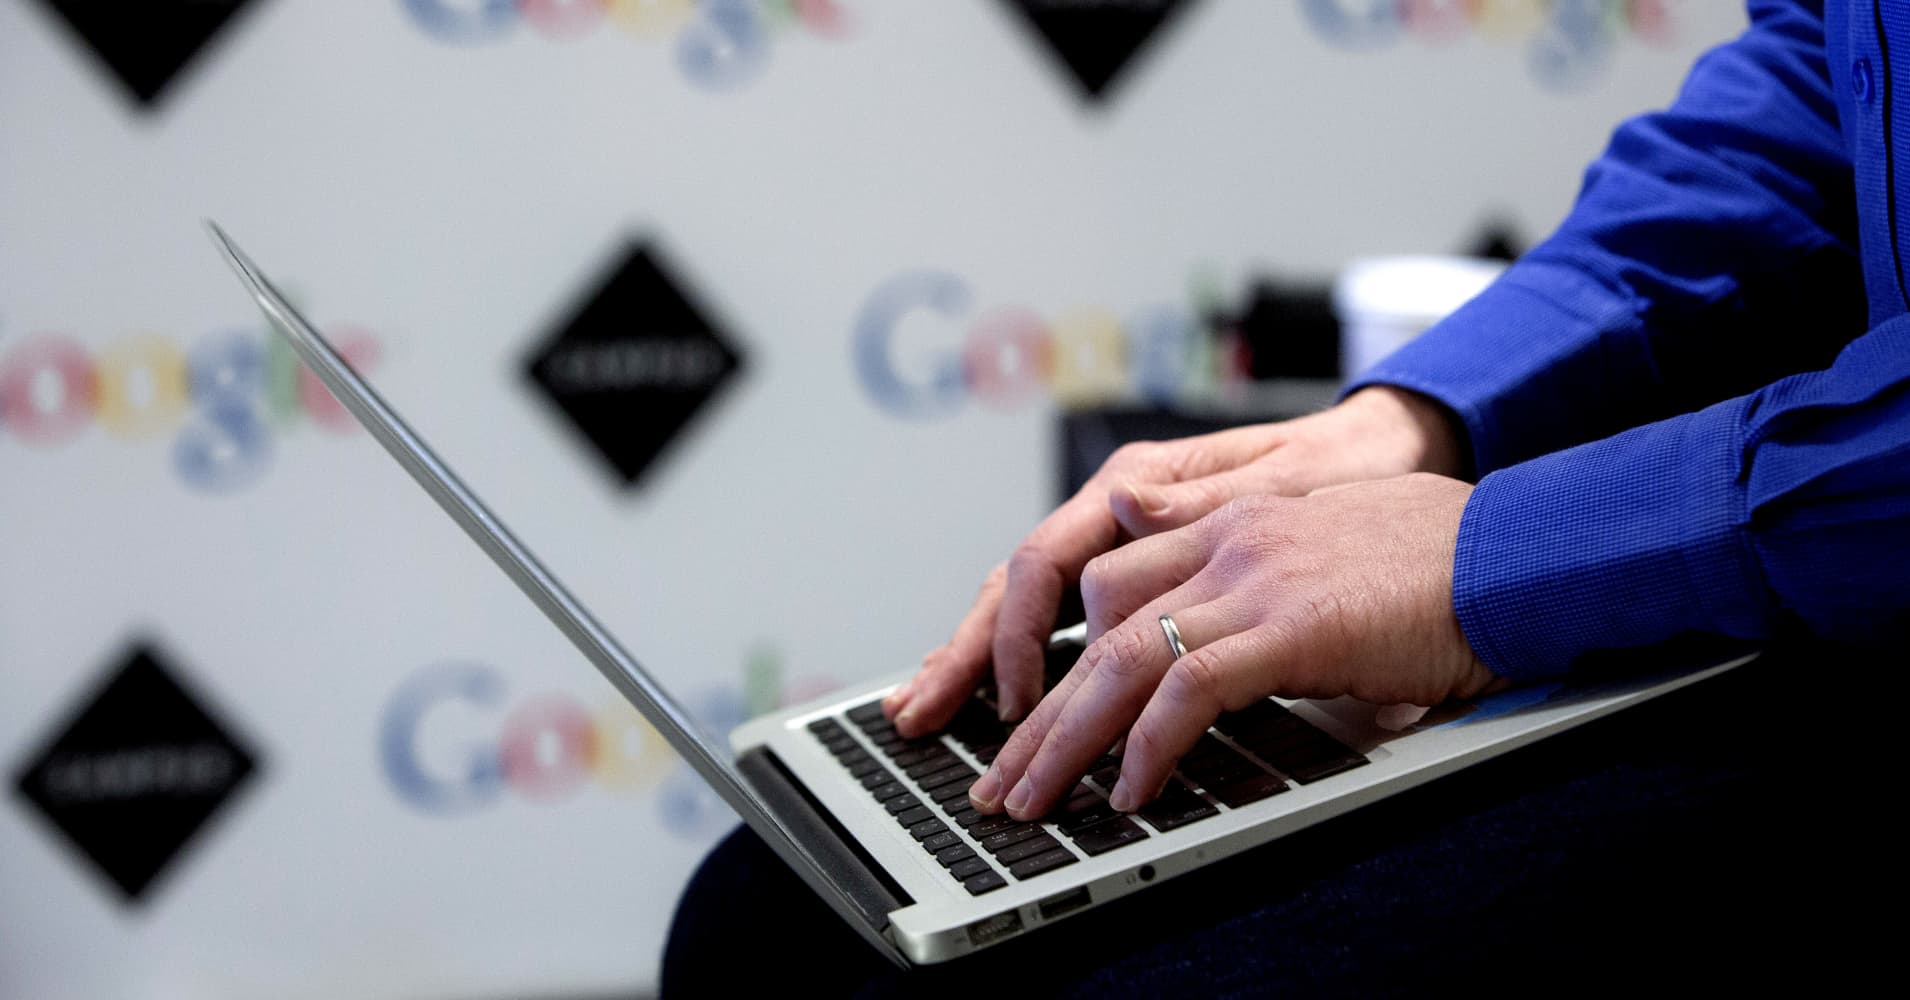 Google to reportedly unveil an ad-blocking feature for its Chrome browser